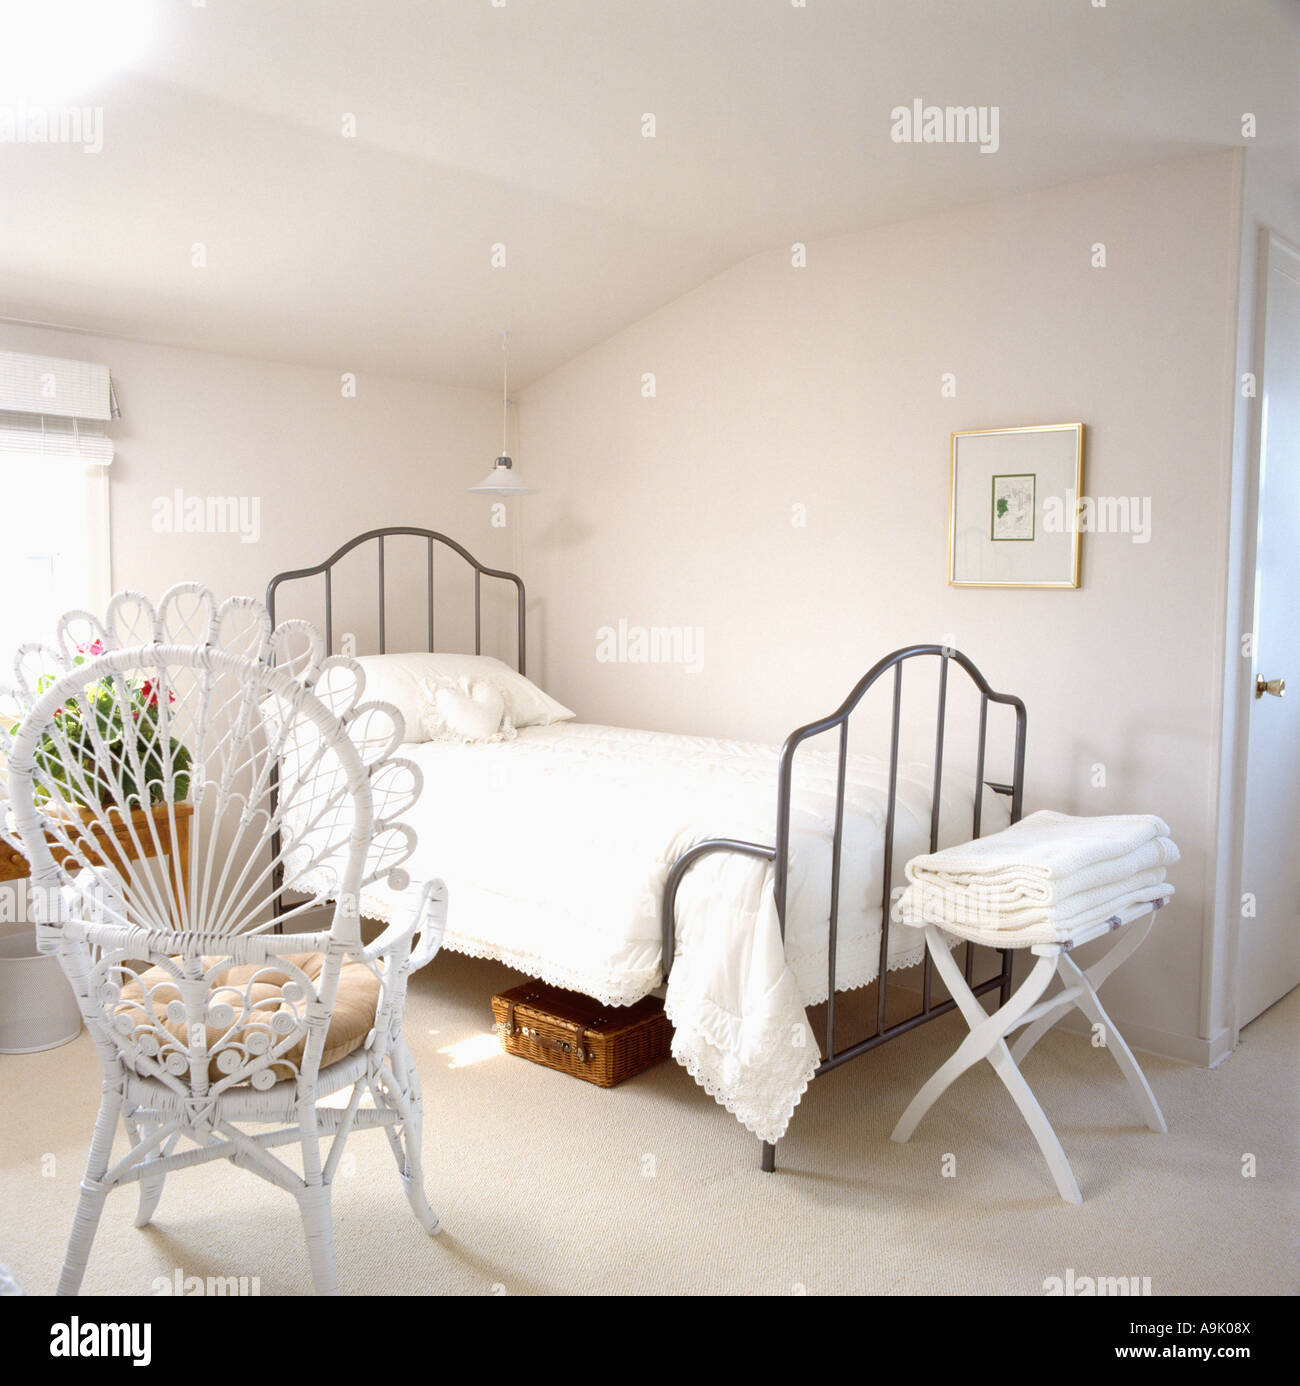 White Peacock Chair In Simple White Bedroom With Black Single Bedstead And  White Linen